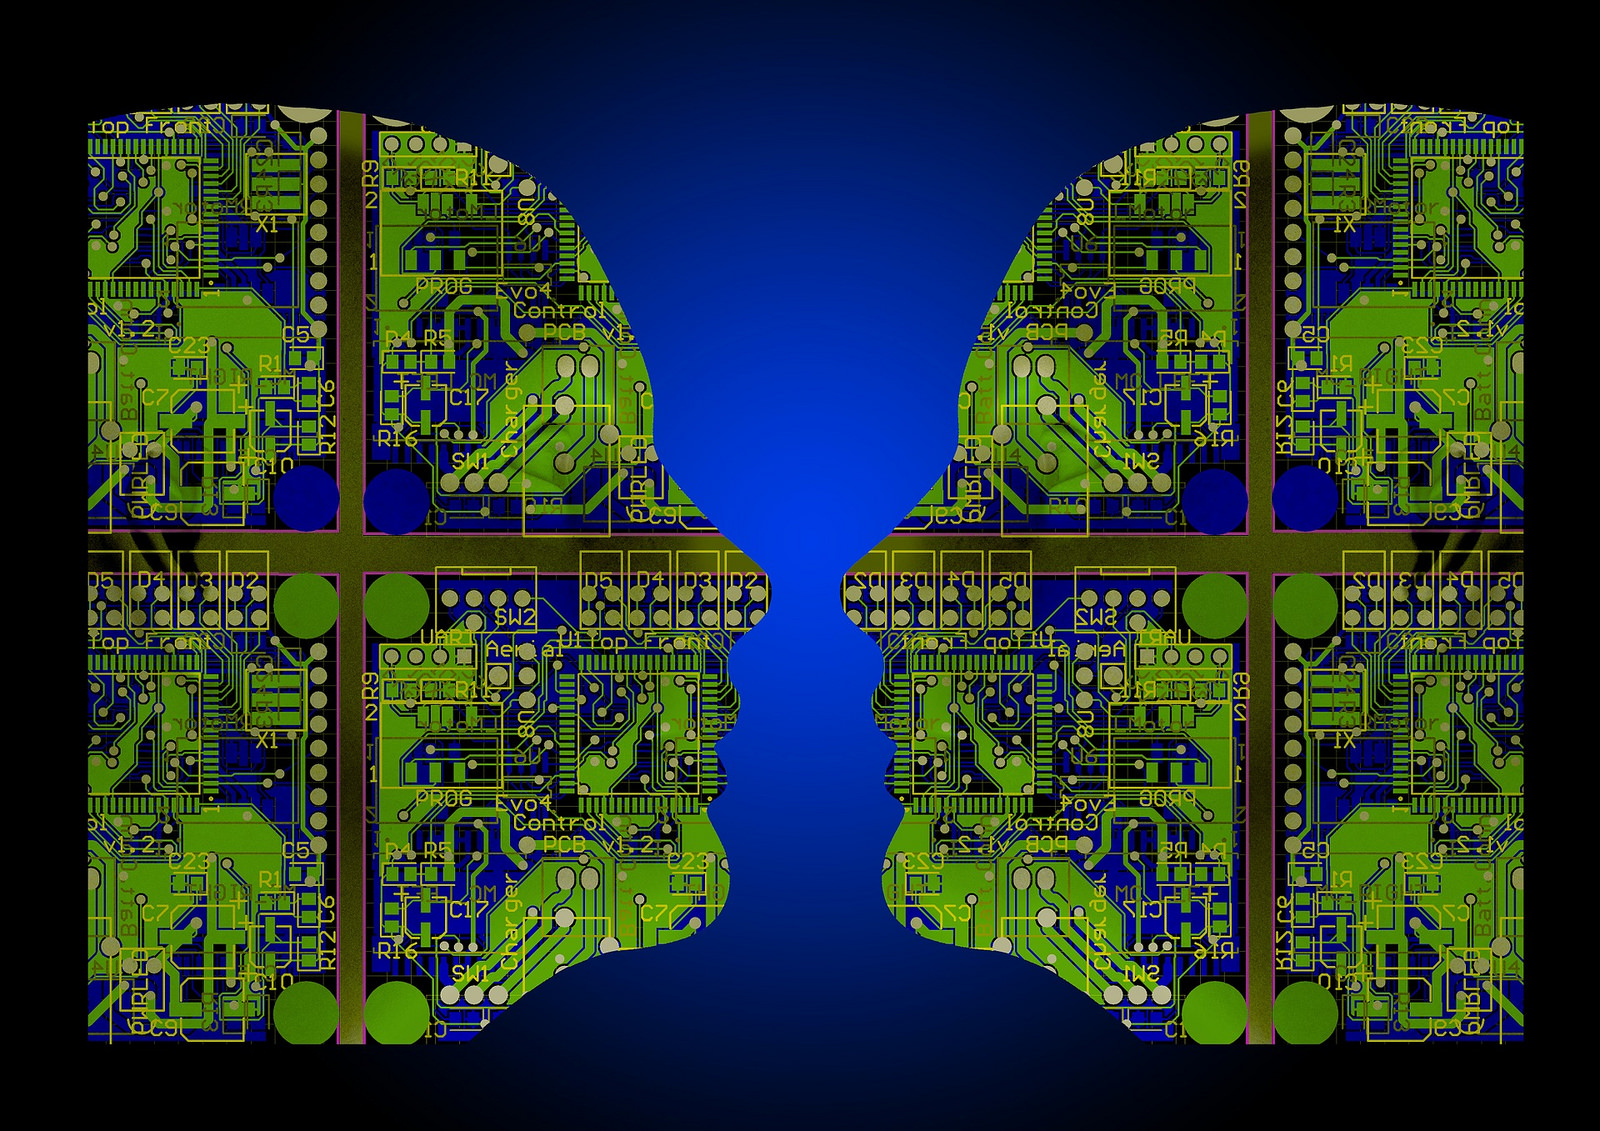 If the right decisions can be made and a moral and ethical implication can be ensured, then the benefits of smart machine networks for the technical, medical, and scientific advancement may also be of benefit to all of humanity. (Image: flickr / CC0 1.0)